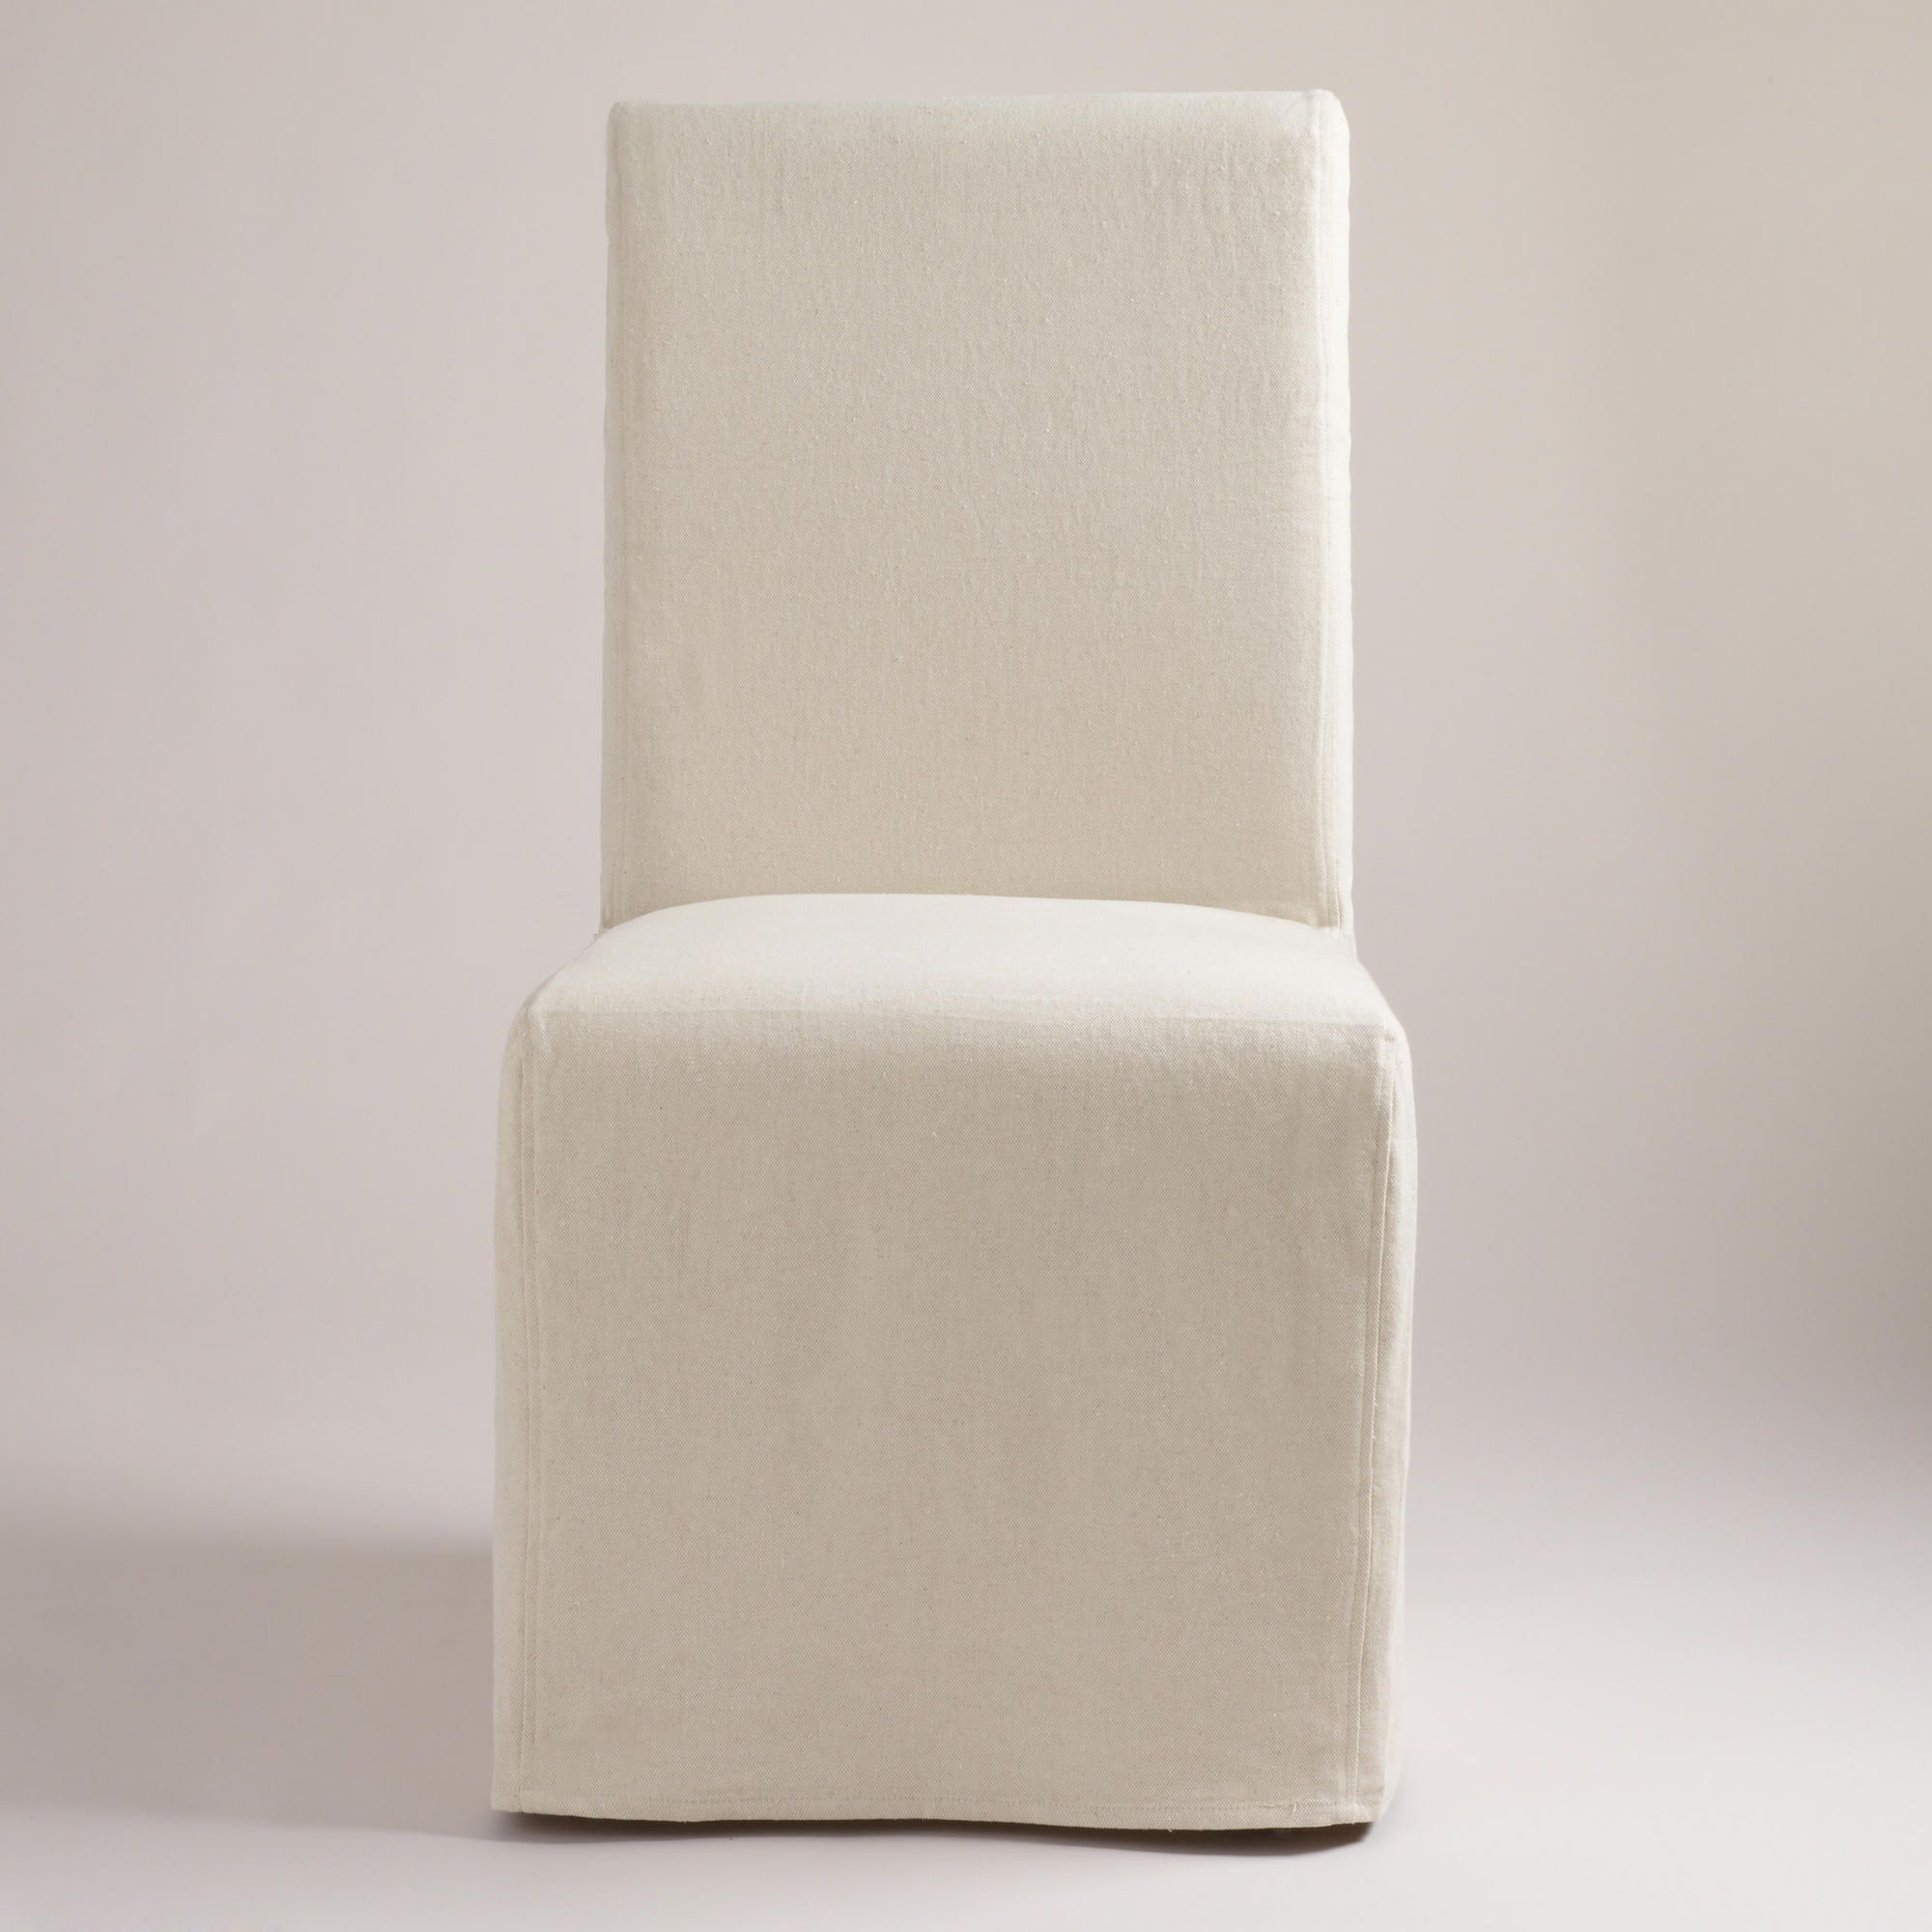 world market anna chair modern table and chairs linen long slipcovers set of 2